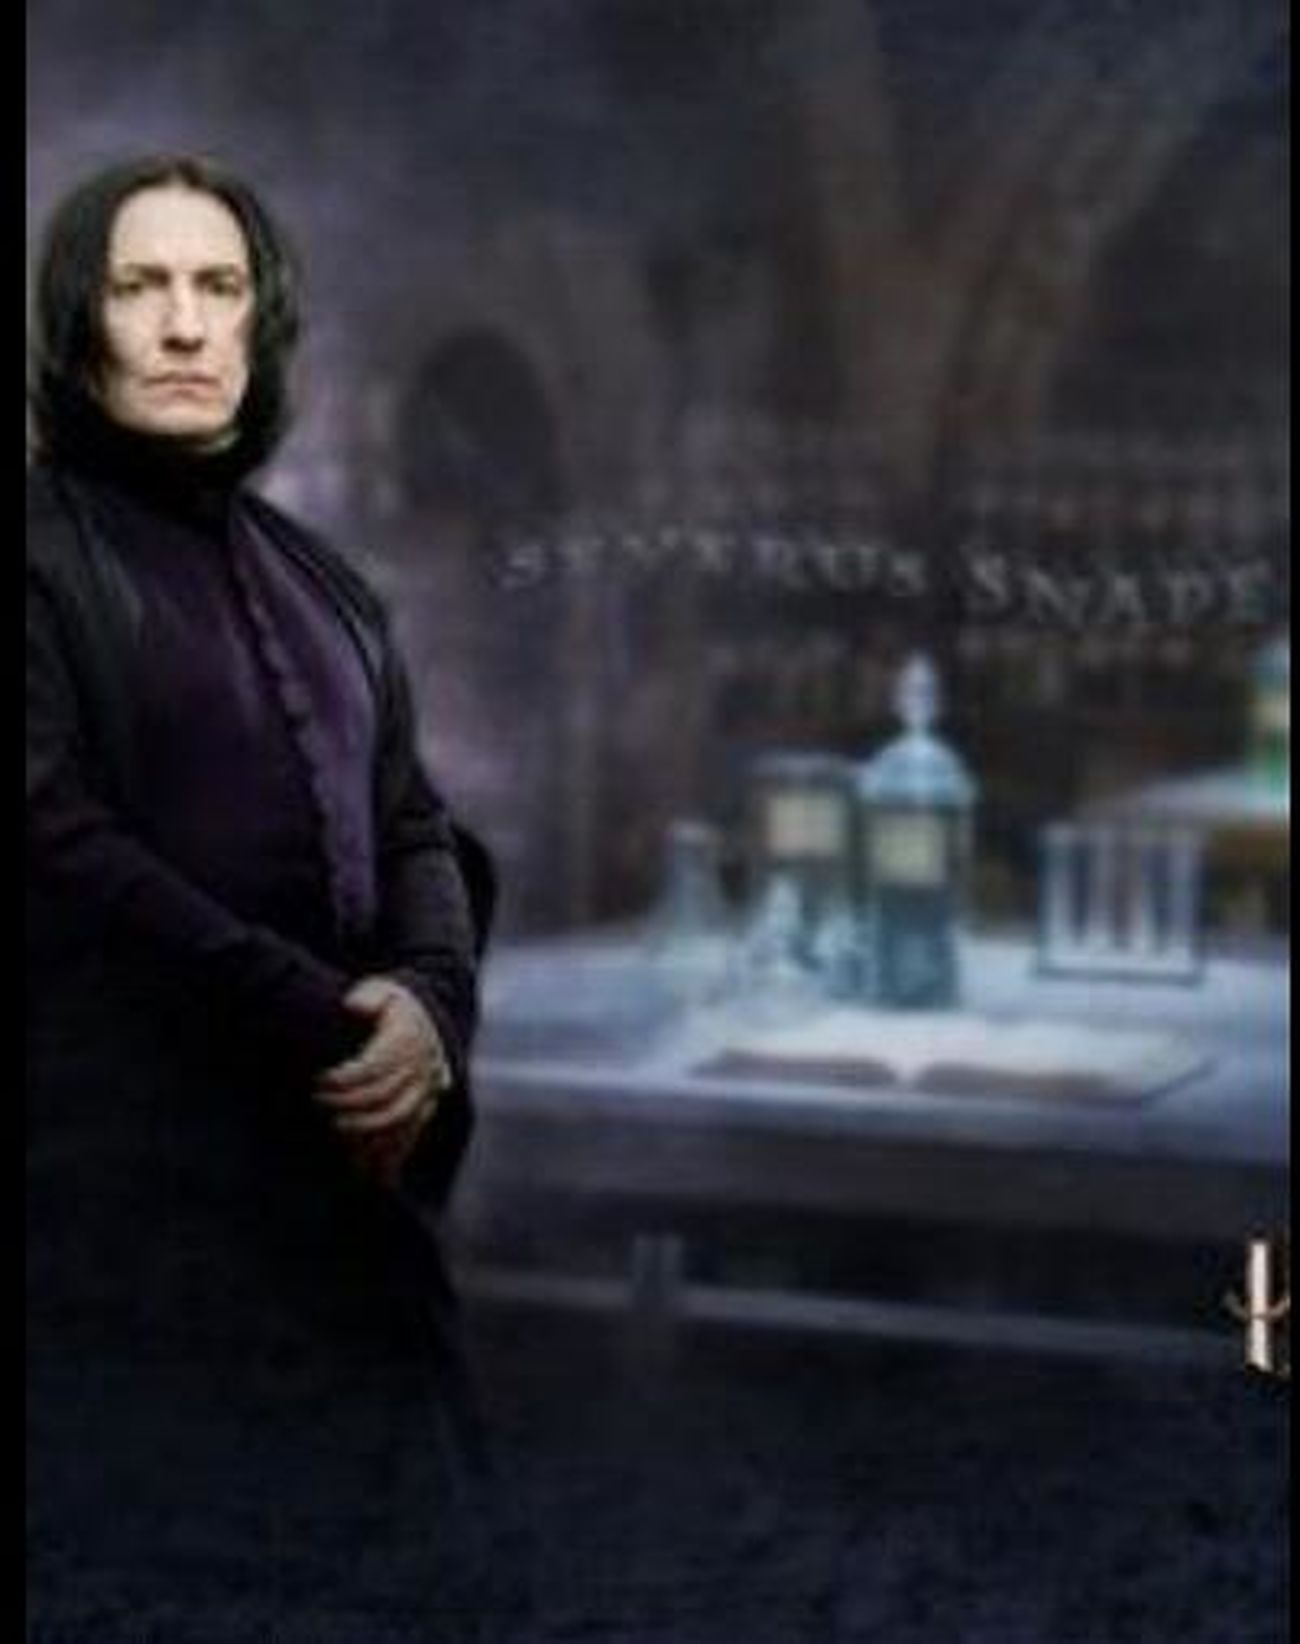 """Read it,control it,unhinge it"" Professor Snape Can't Get Enough Mesmorising"